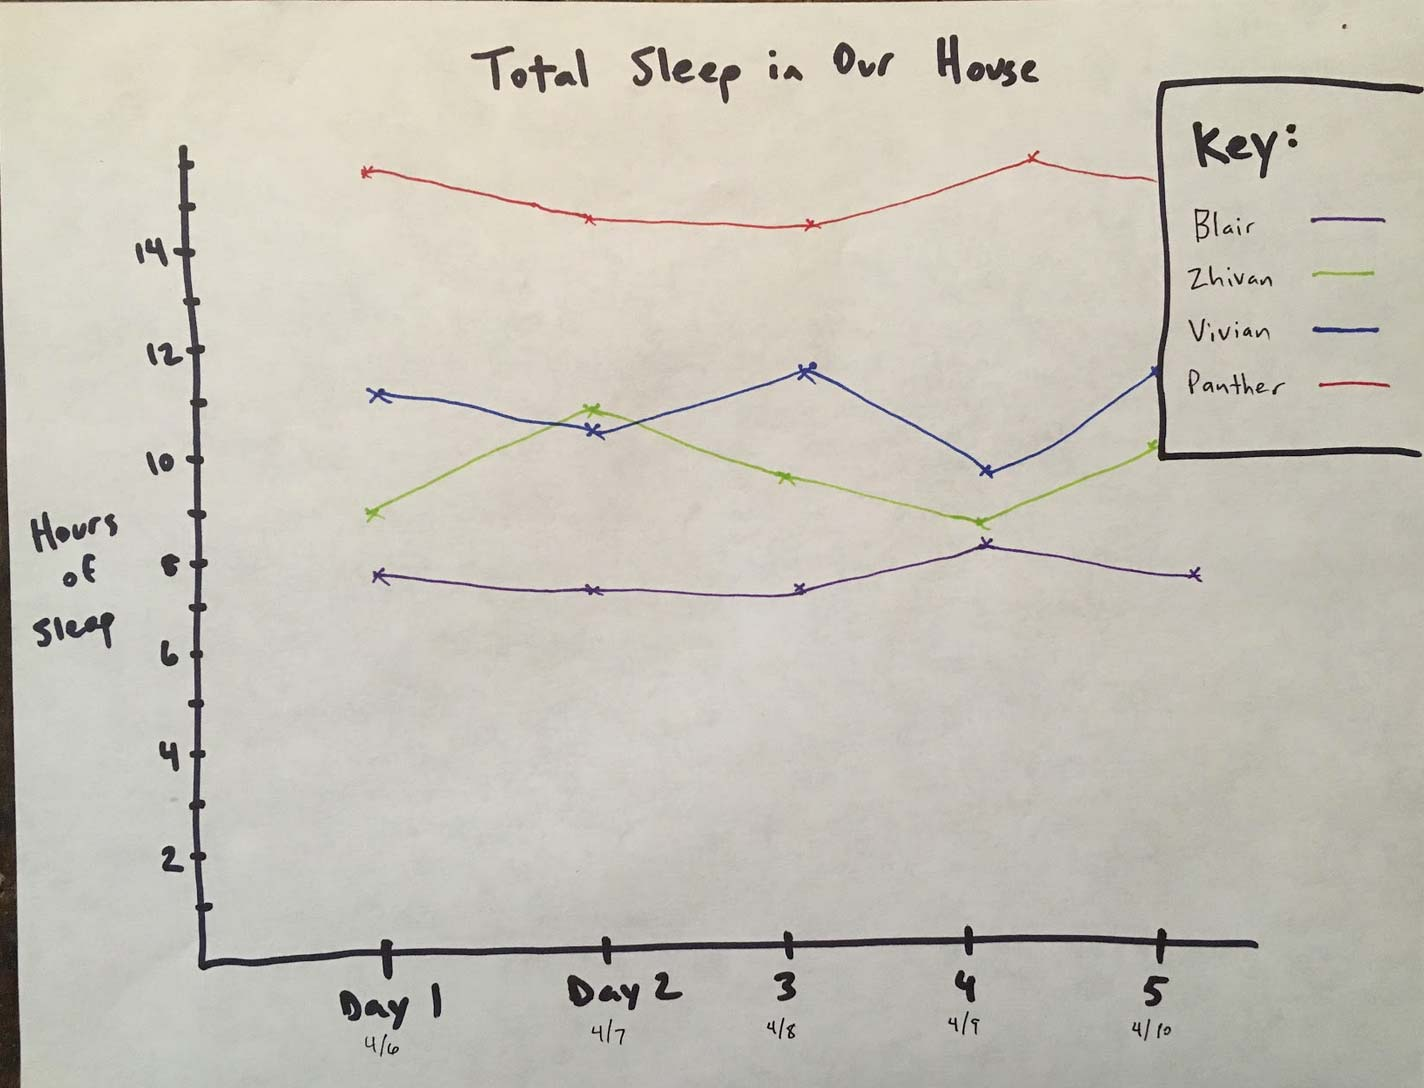 Graphing-Family--Sleep-Patterns.jpg